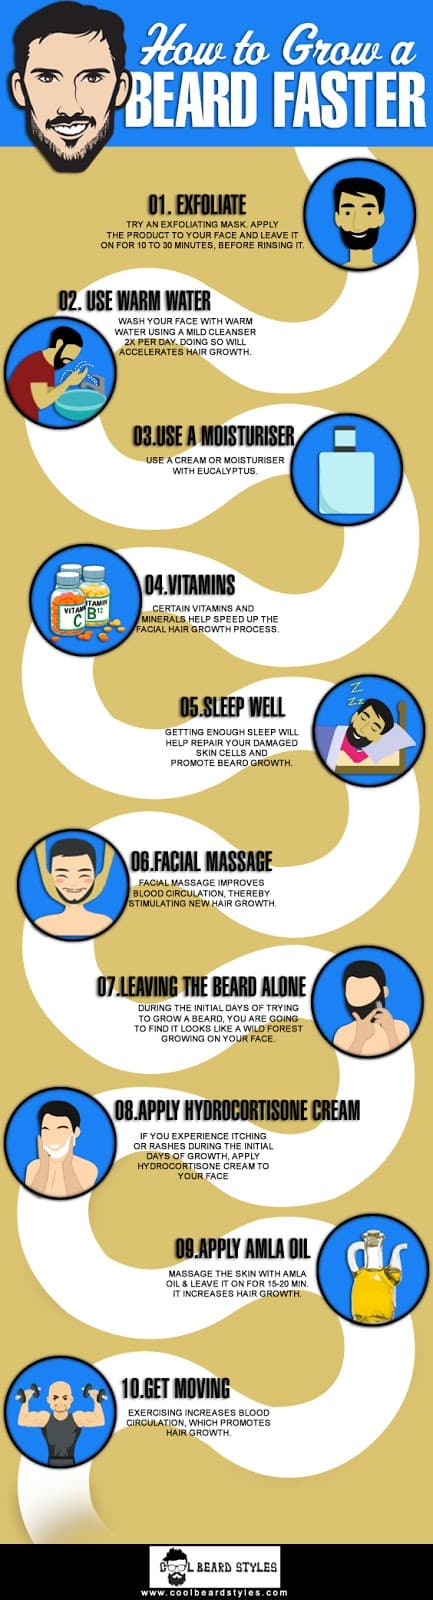 how to grow your beard faster 1